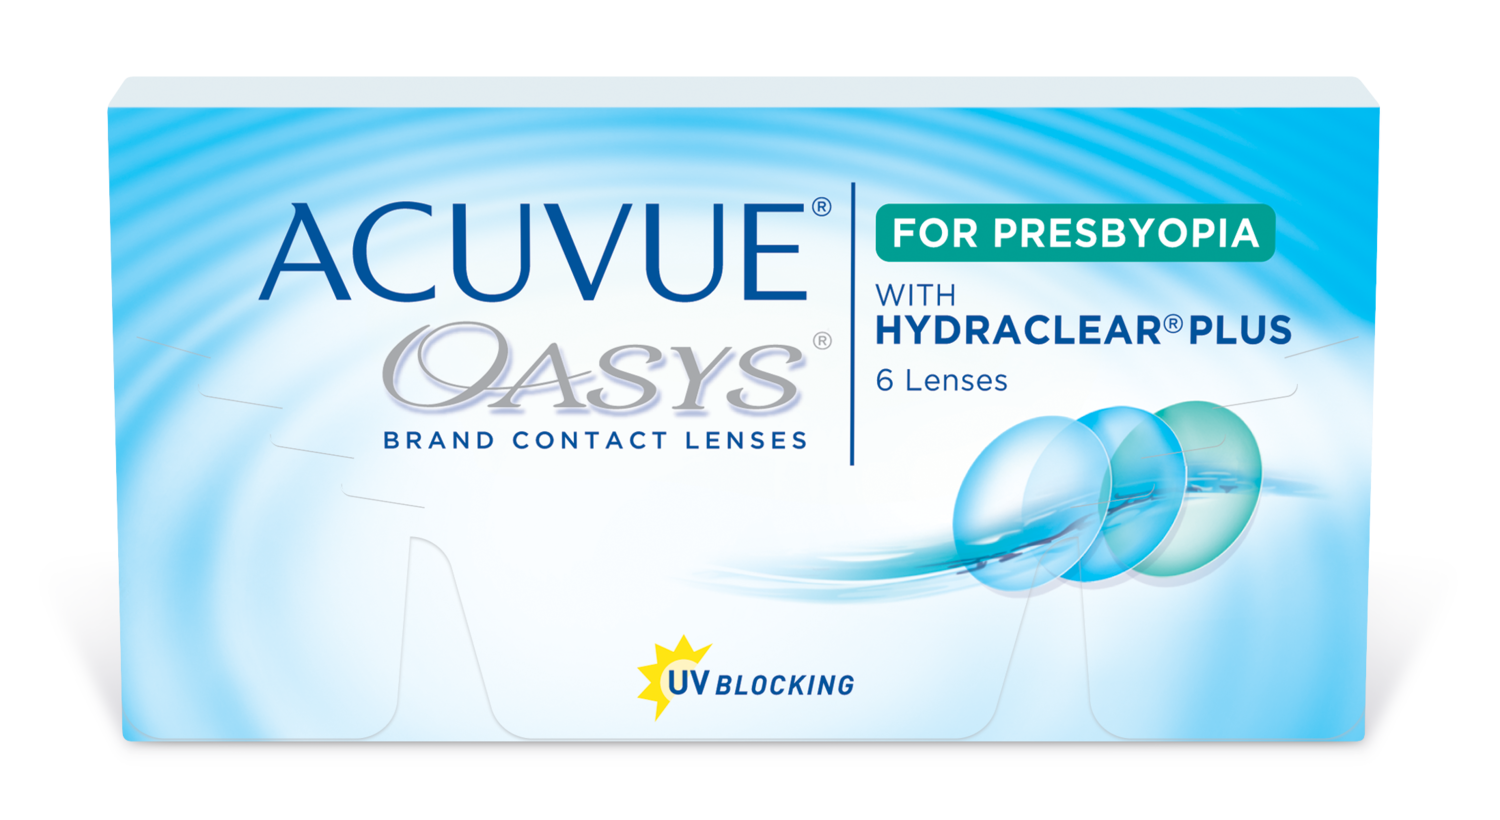 ACUVUE® OASYS® for PRESBYOPIA